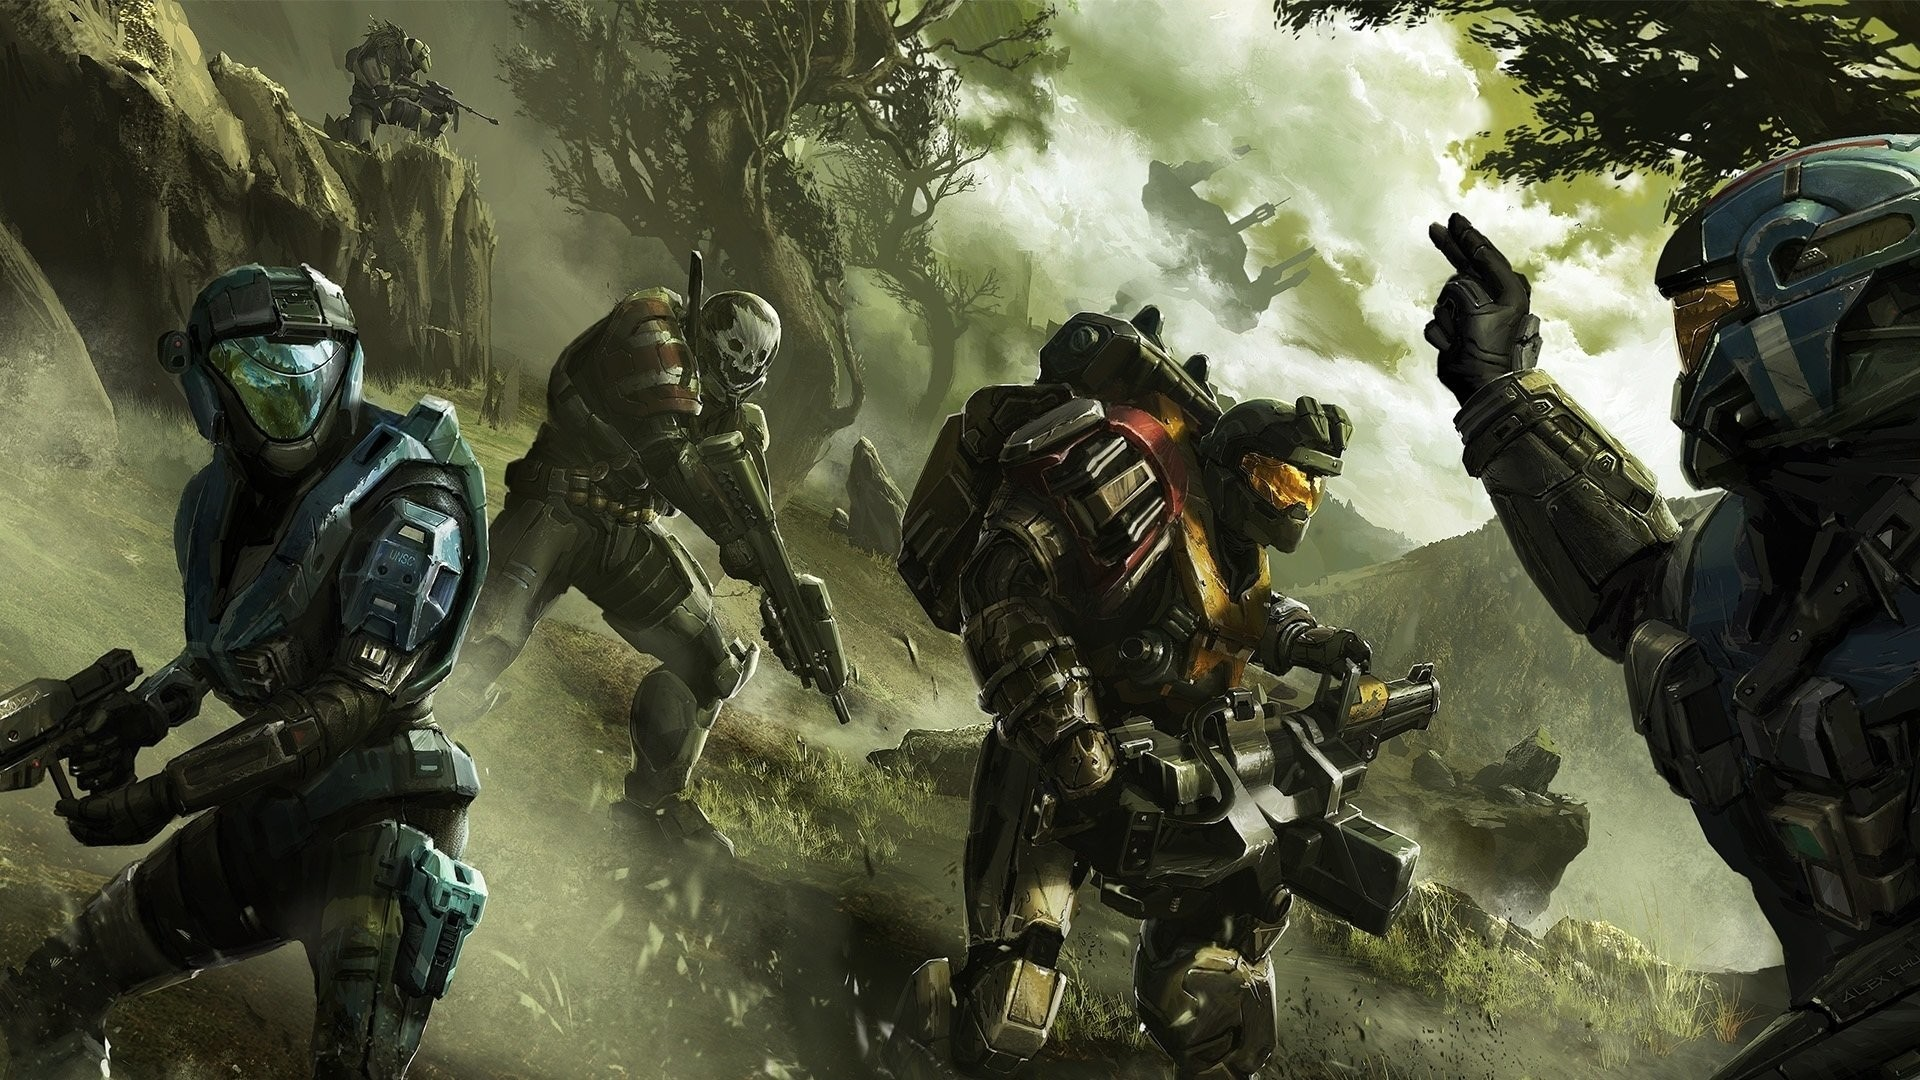 Halo Reach Wallpaper 81 Images